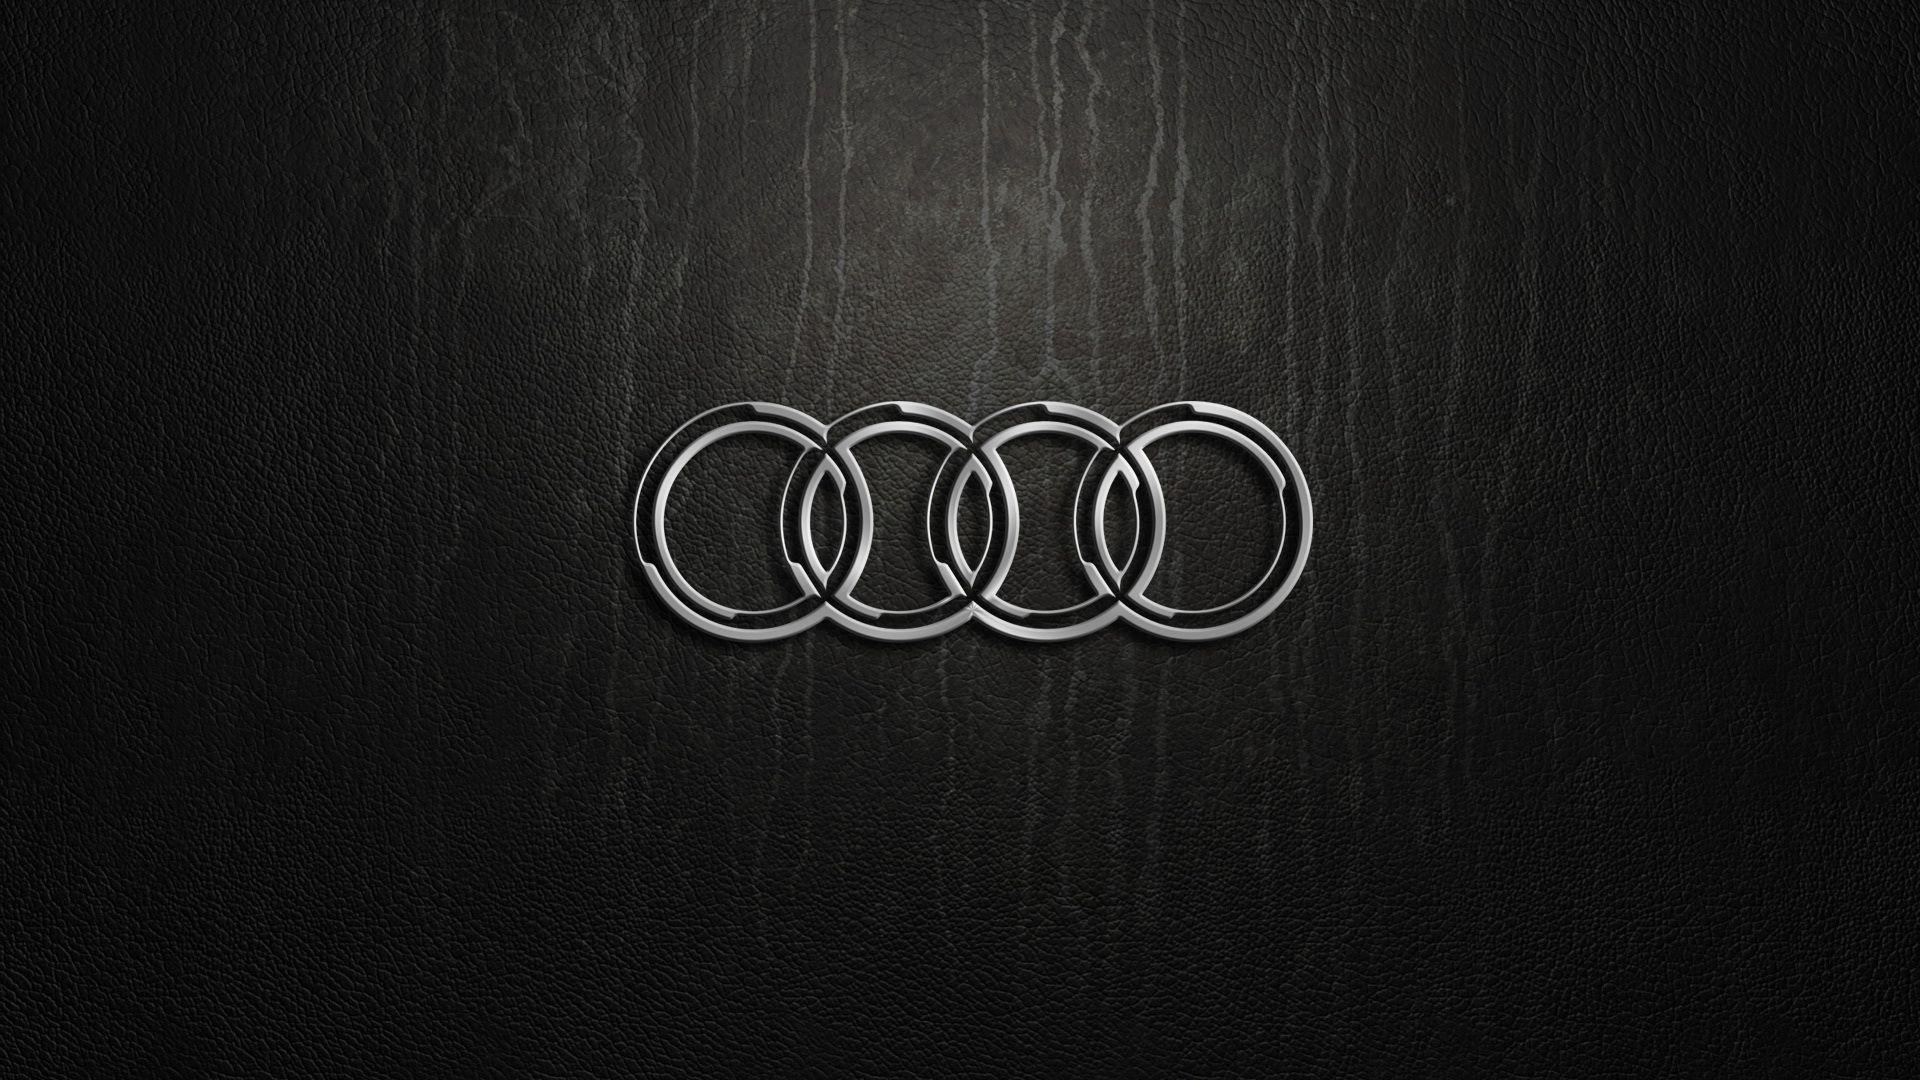 Audi Logo Wallpapers Wallpaper Cave - Audi emblem